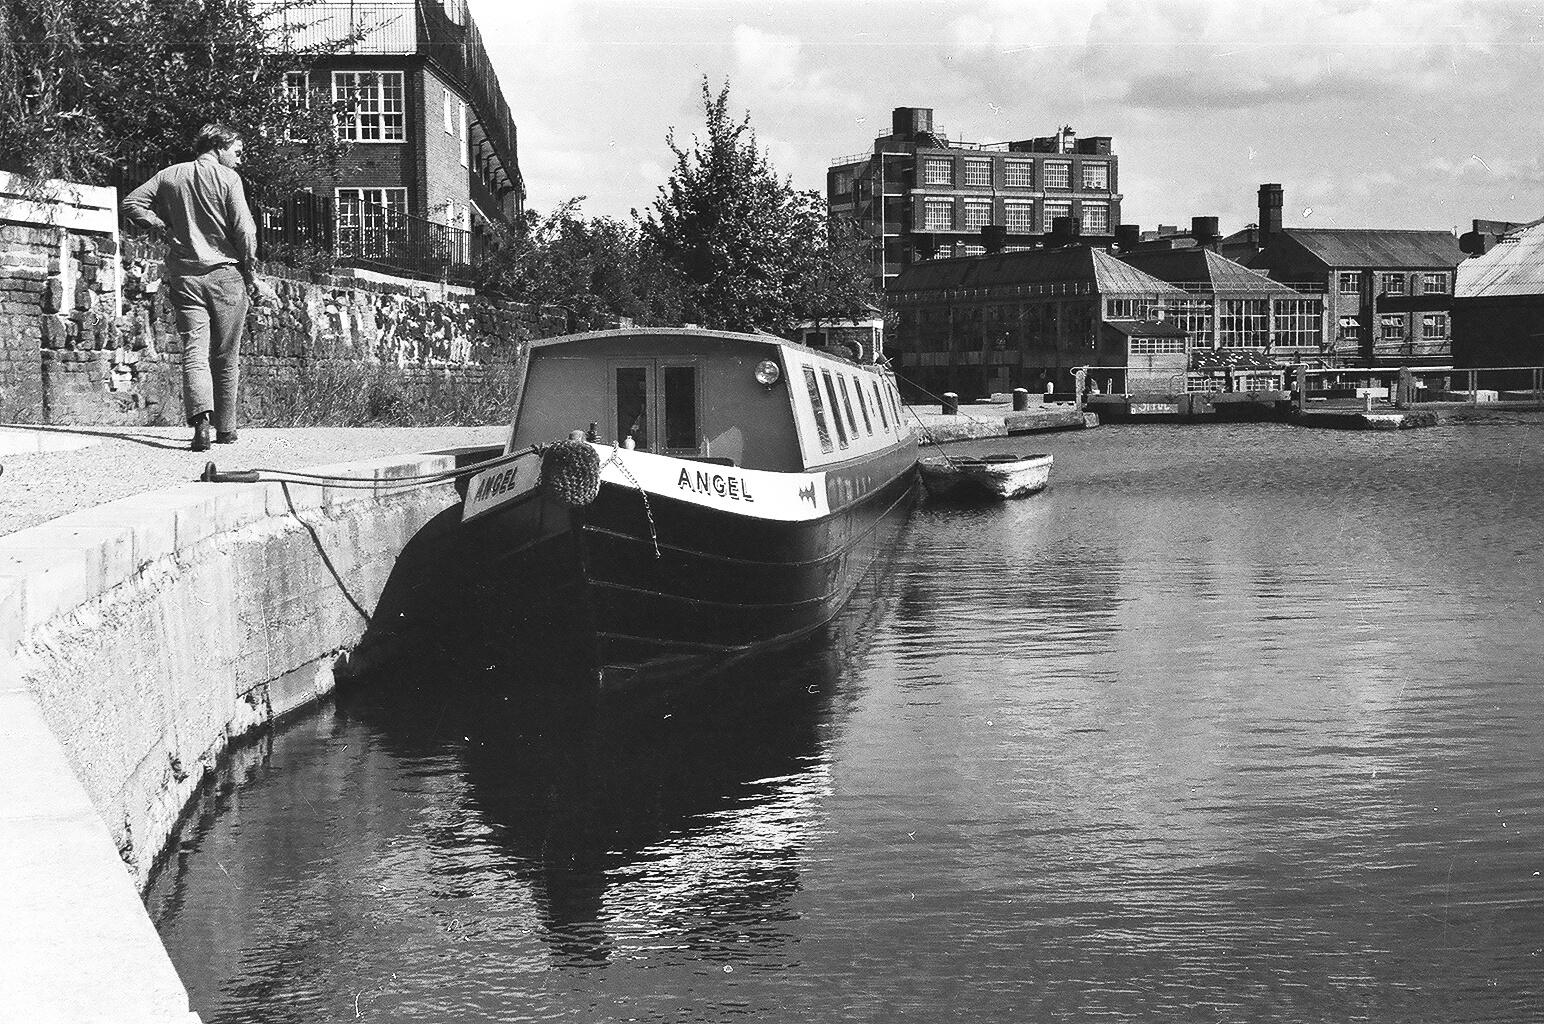 Angel I just arrived 1974 - City Road Lock